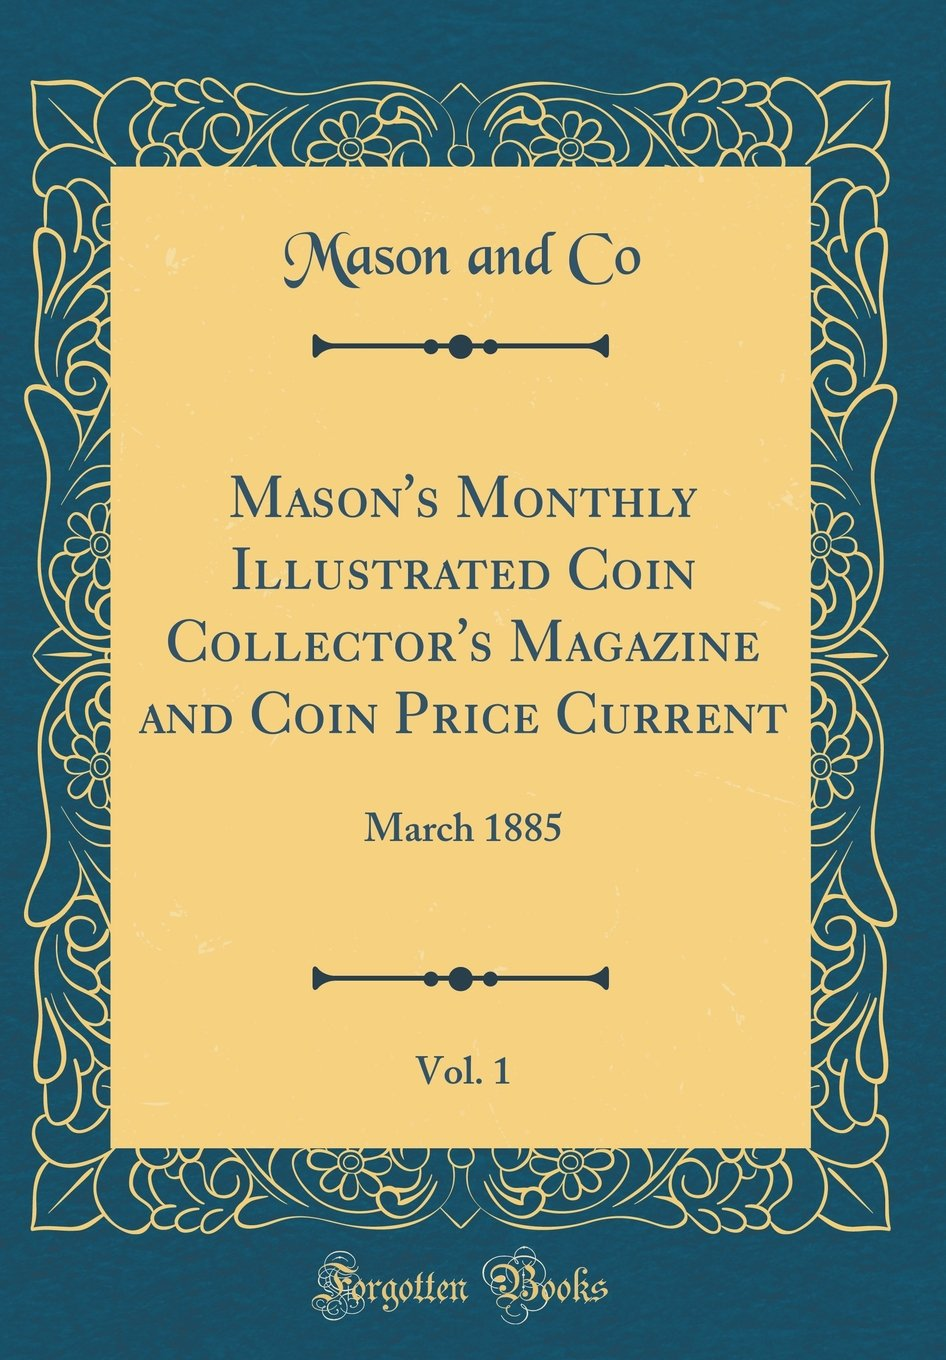 Mason's Monthly Illustrated Coin Collector's Magazine and Coin Price Current, Vol. 1: March 1885 (Classic Reprint) PDF